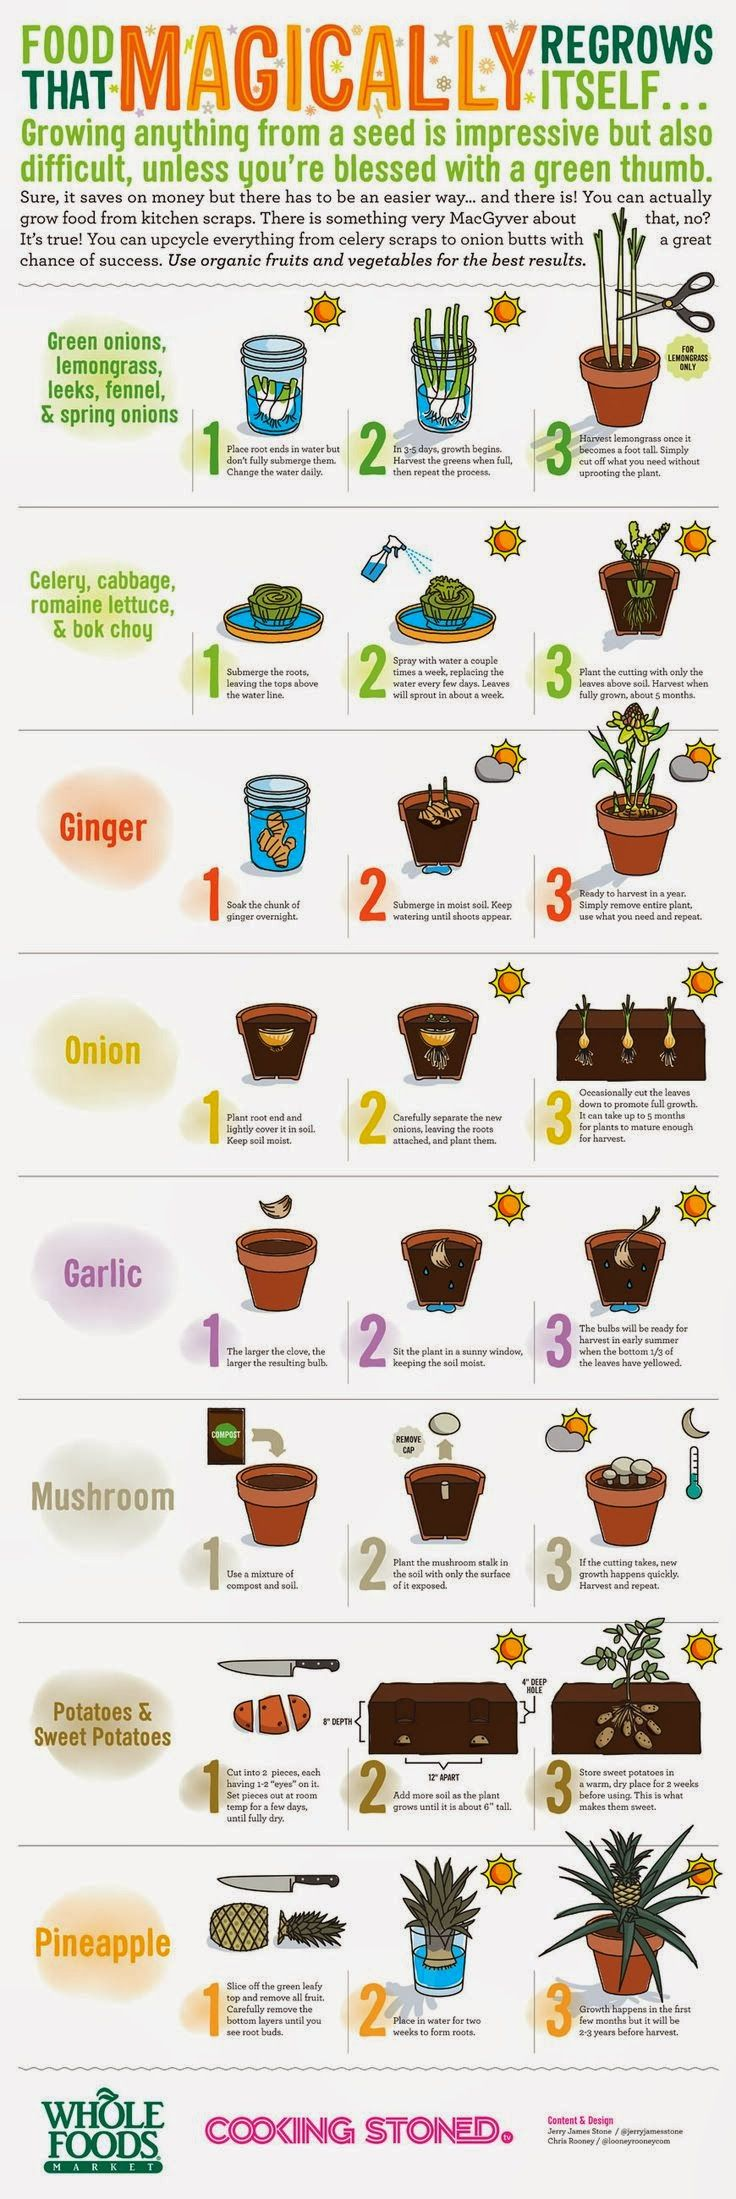 Food that re grows itself